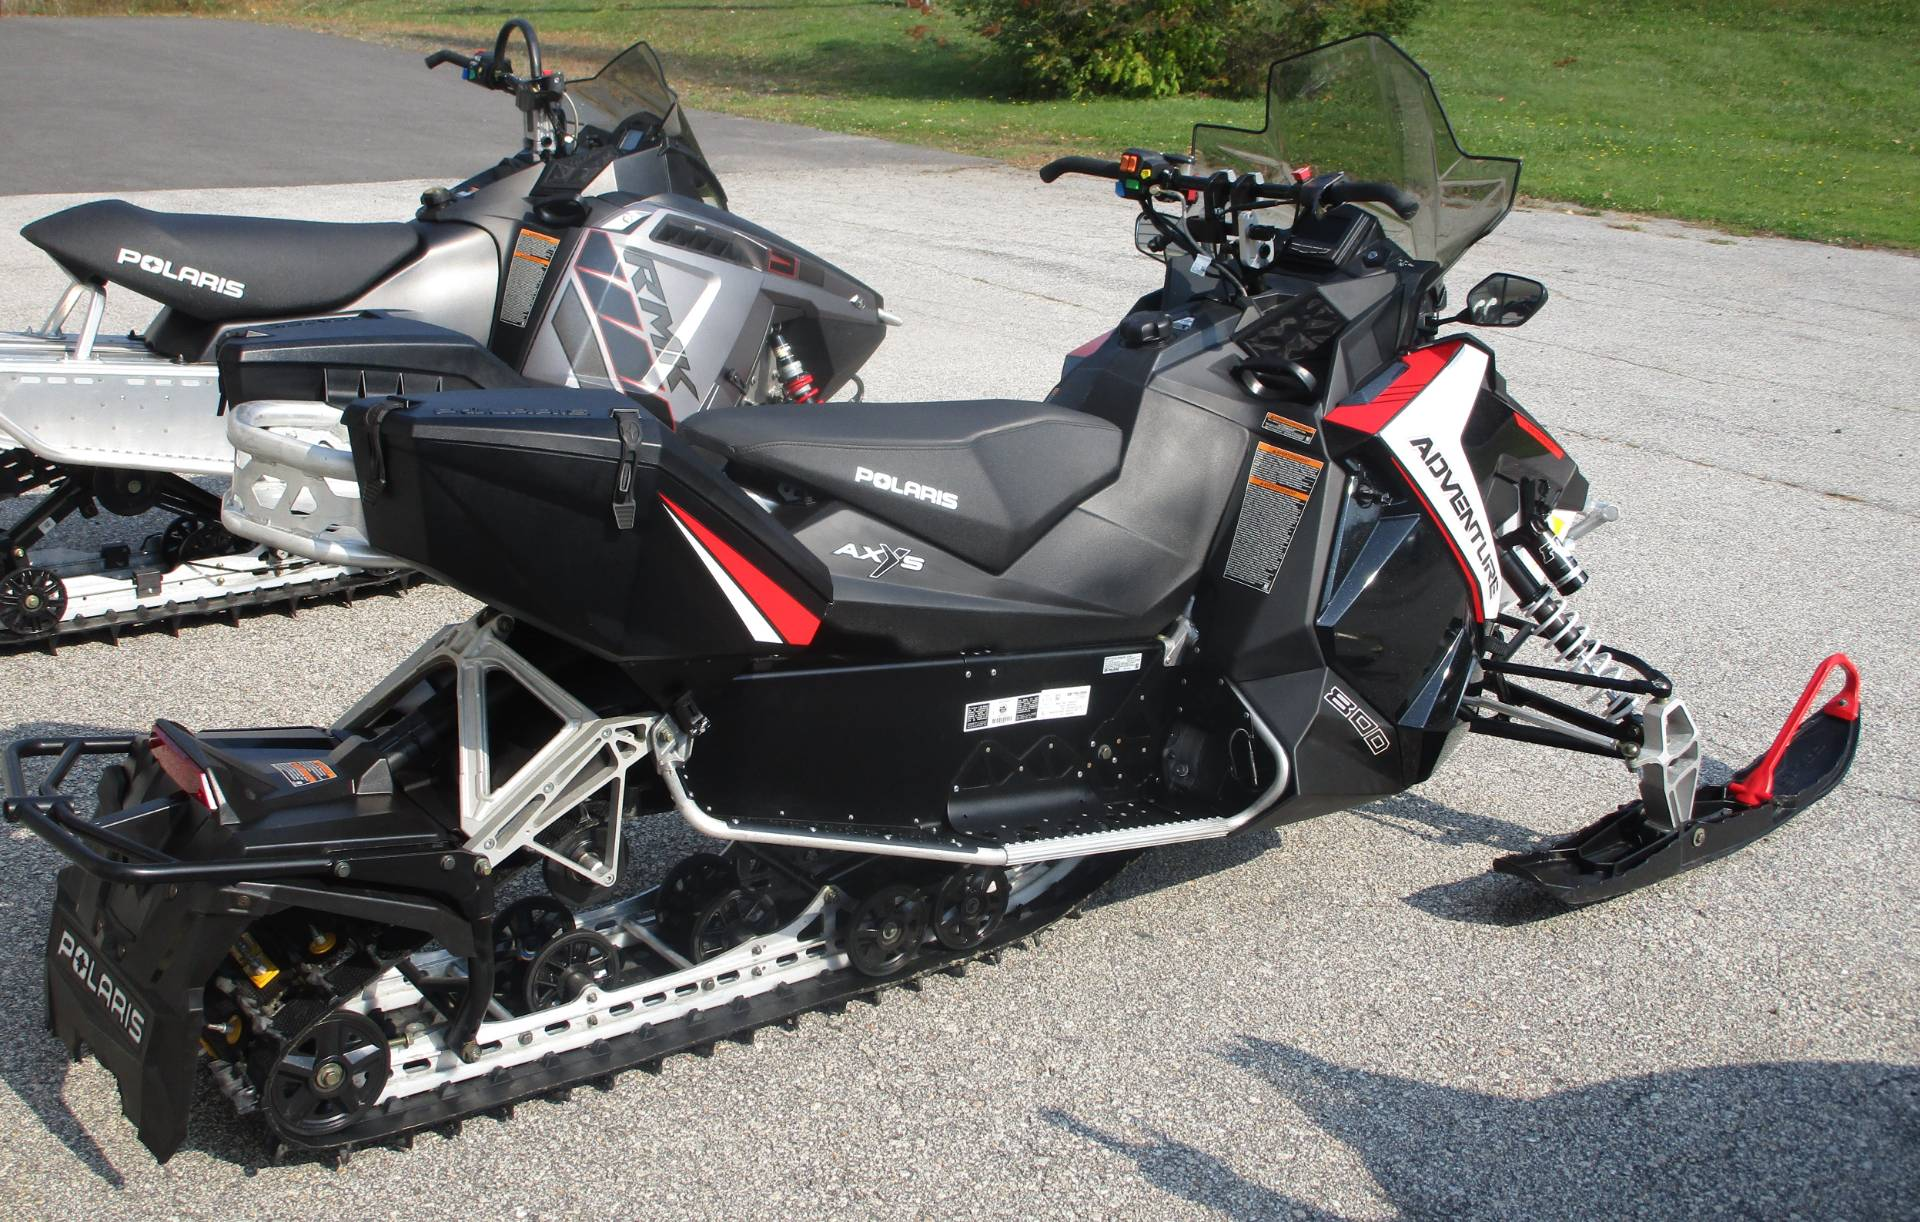 2016 Polaris 800 SWITCHBACK Adventure in Newport, Maine - Photo 1